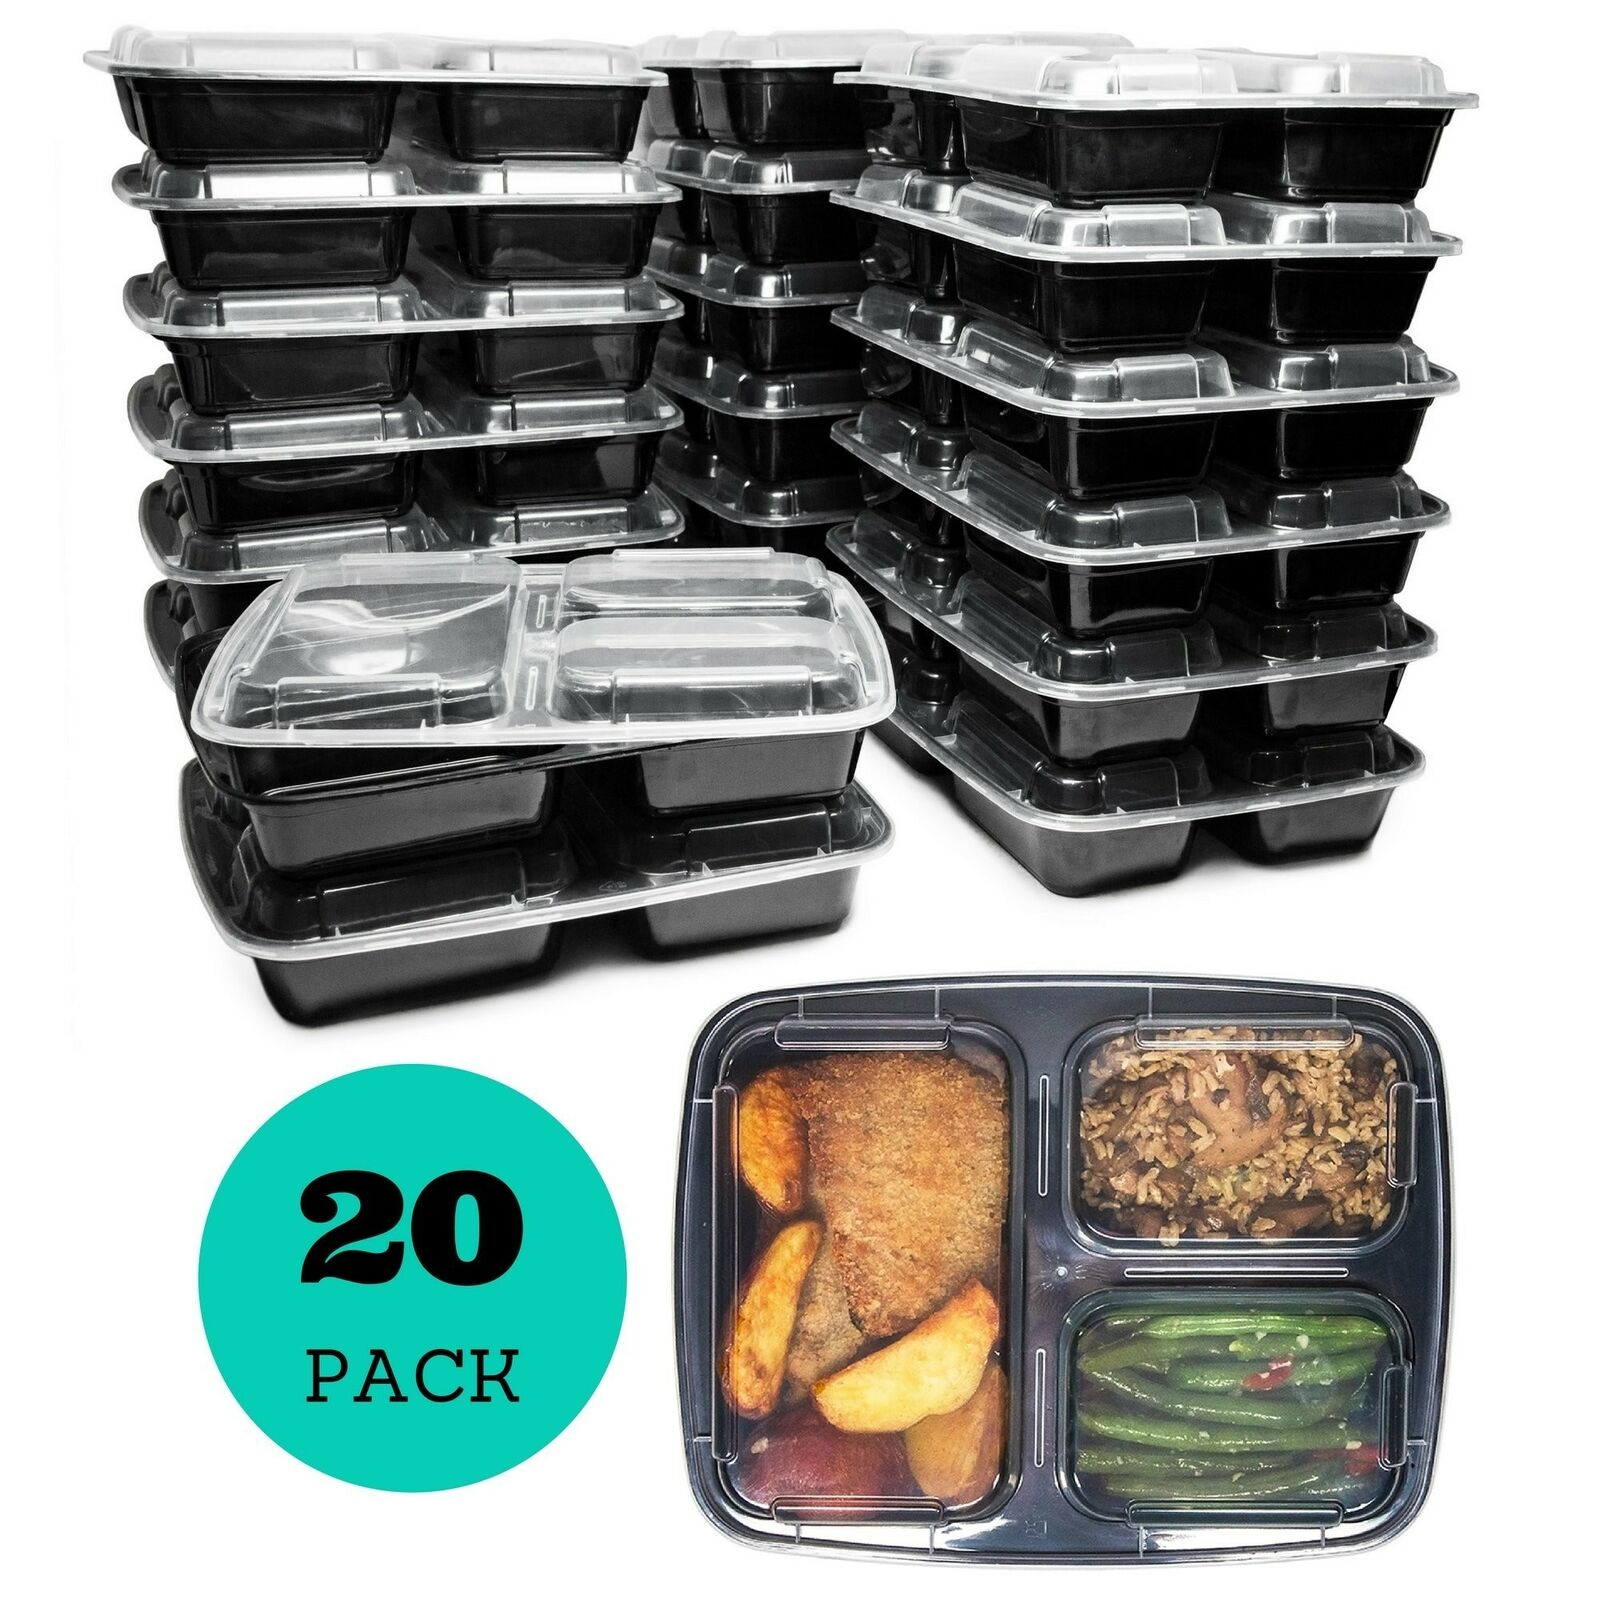 Meal Prep Containers (20 Pack) 3 Compartments, 32 oz, Food Storage Bento Box 1